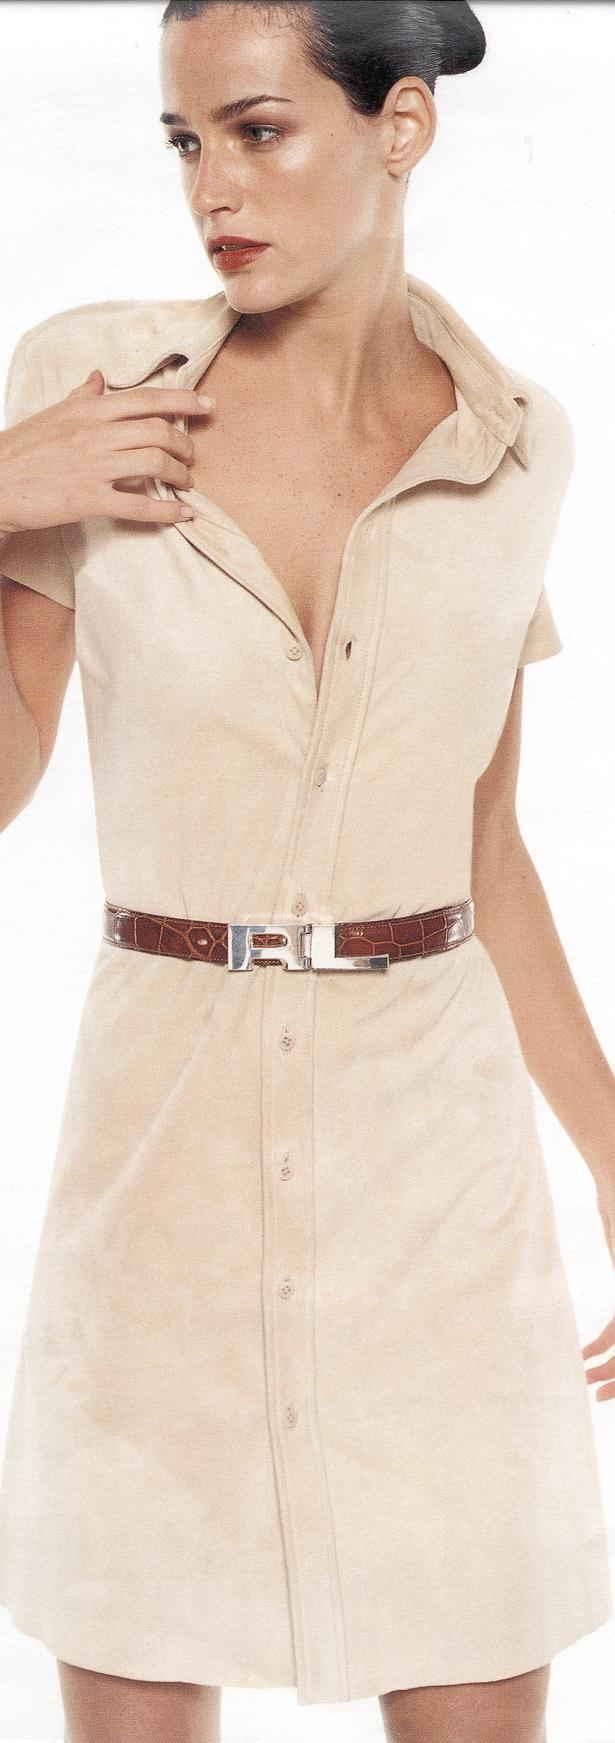 Shirtdress Straight-lined dress buttoned down the front